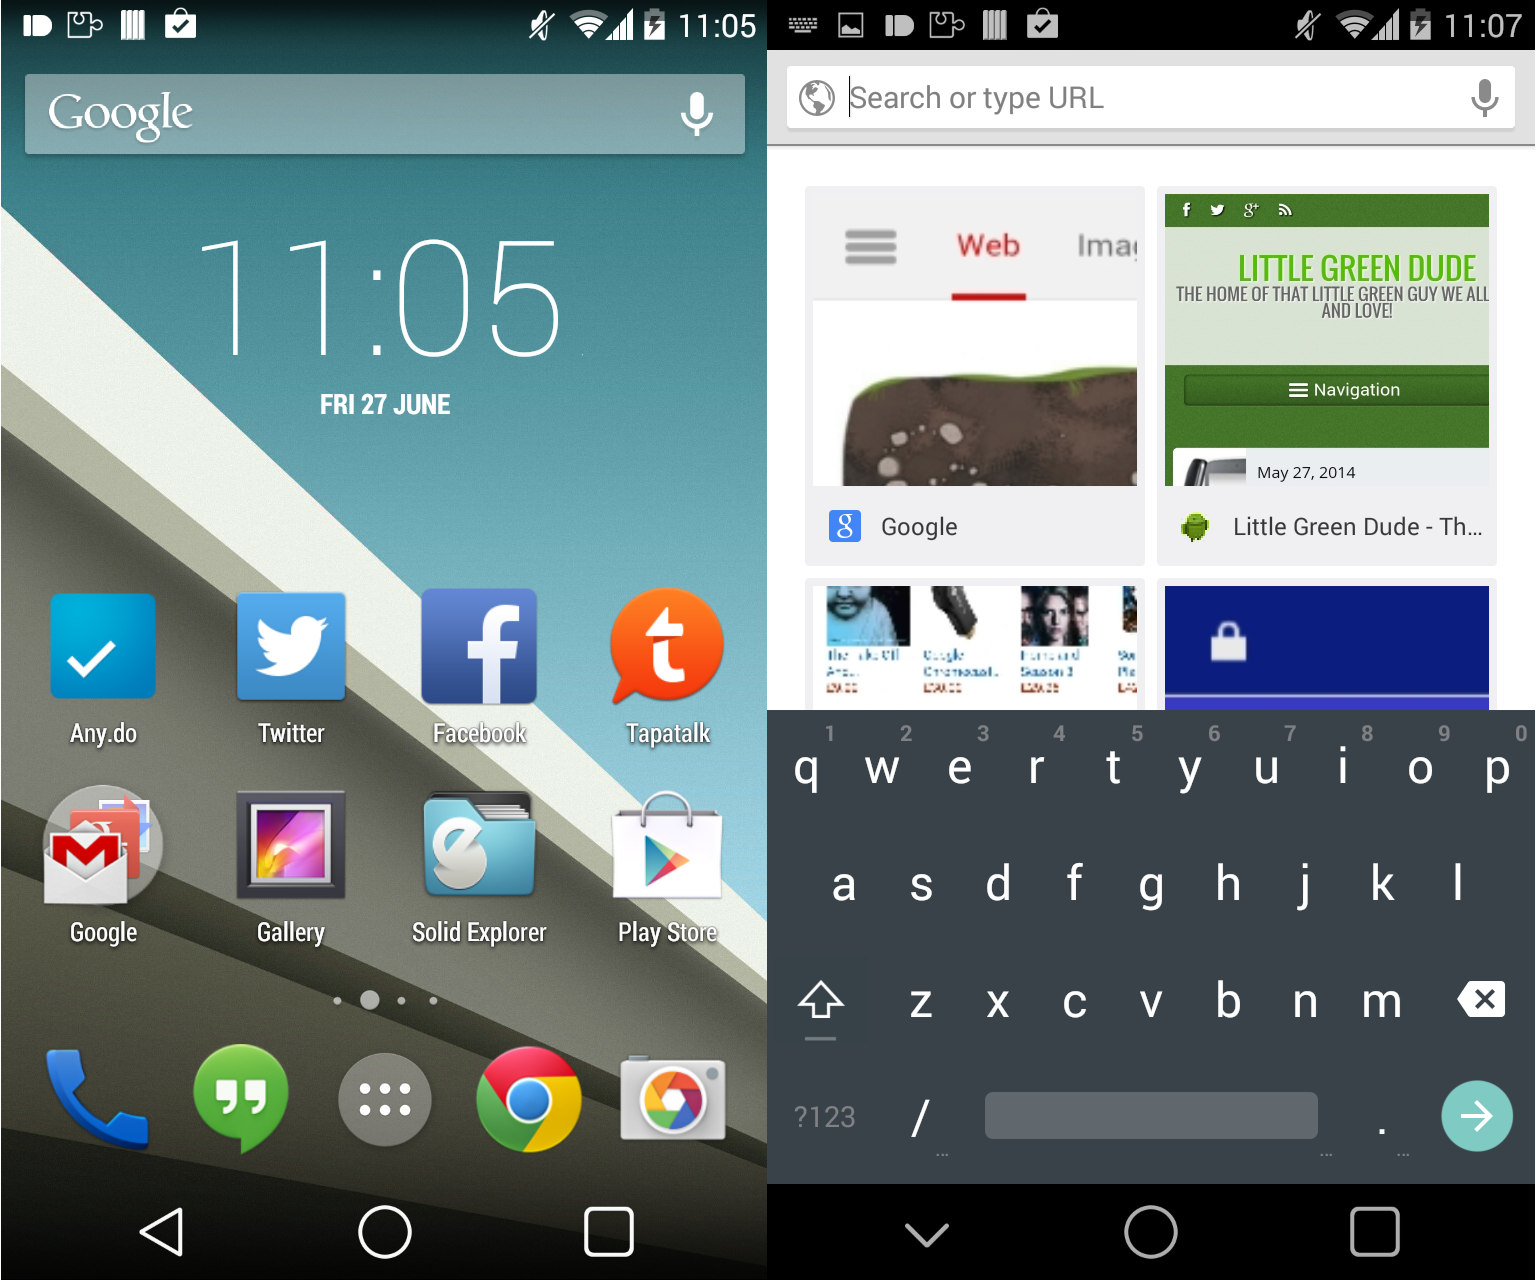 Make Your Device Look Like Android L - Little Green Dude